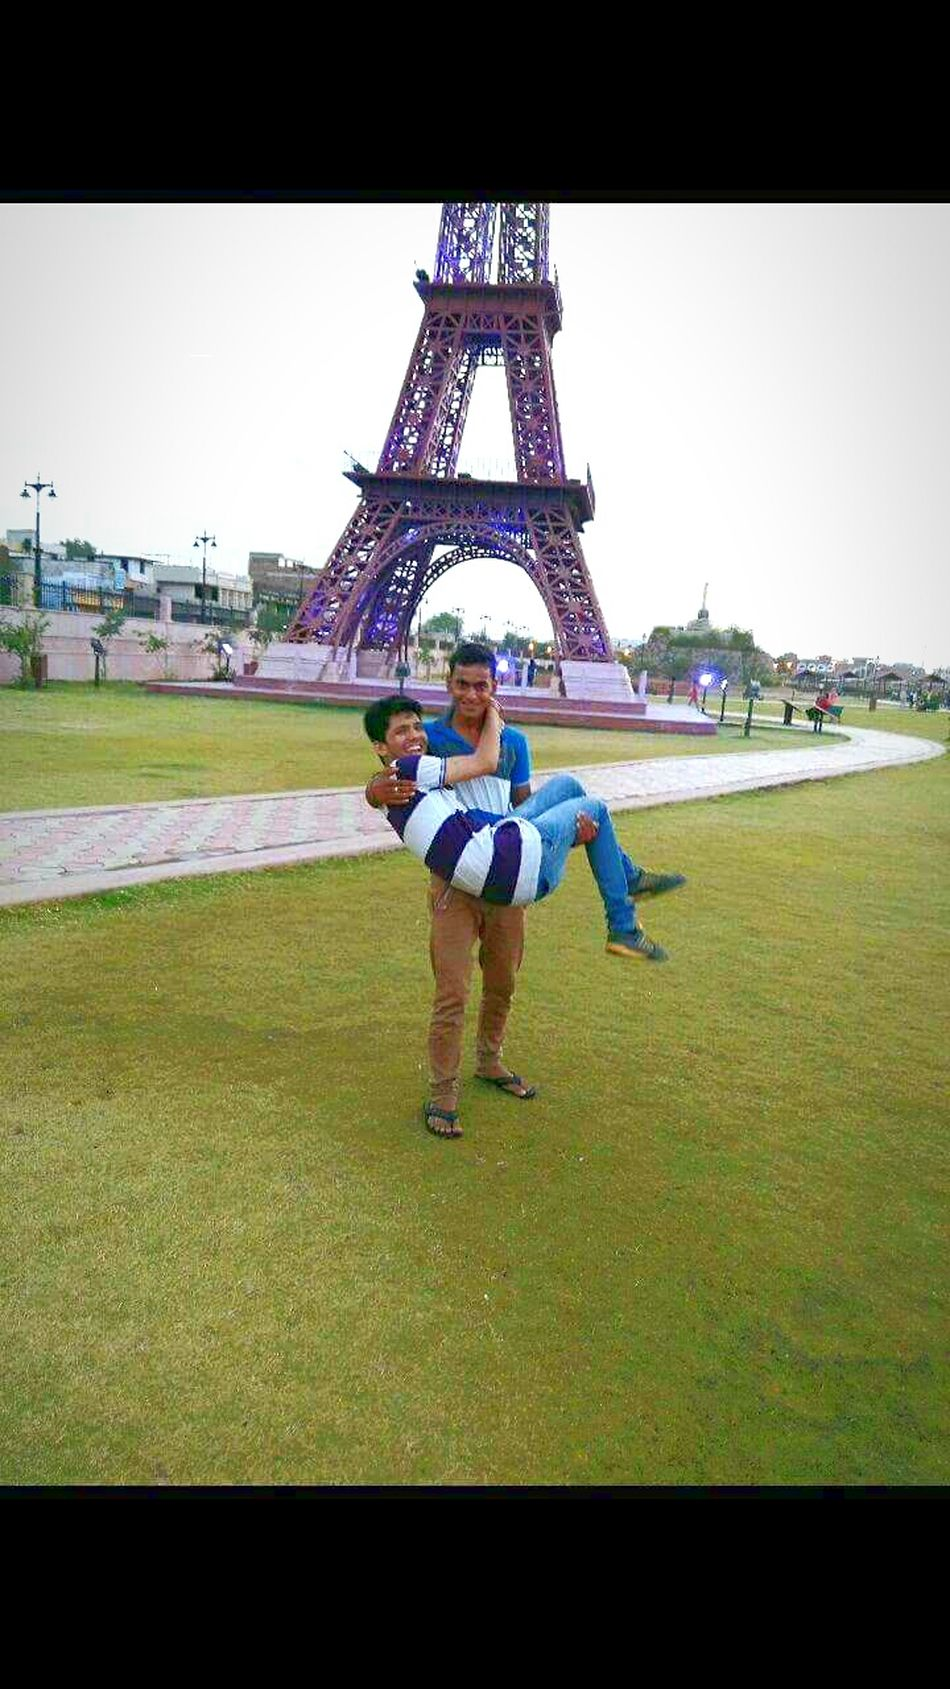 I m injured and my friend help me to carry me at home ..Feel The Journey Friends Friendsforlife IFITtower Greenery 7 Wonders Park Kota Royal Rajasthan Incredible India Sweet Memories Original Experiences Here Belongs To Me Yashansh_photography